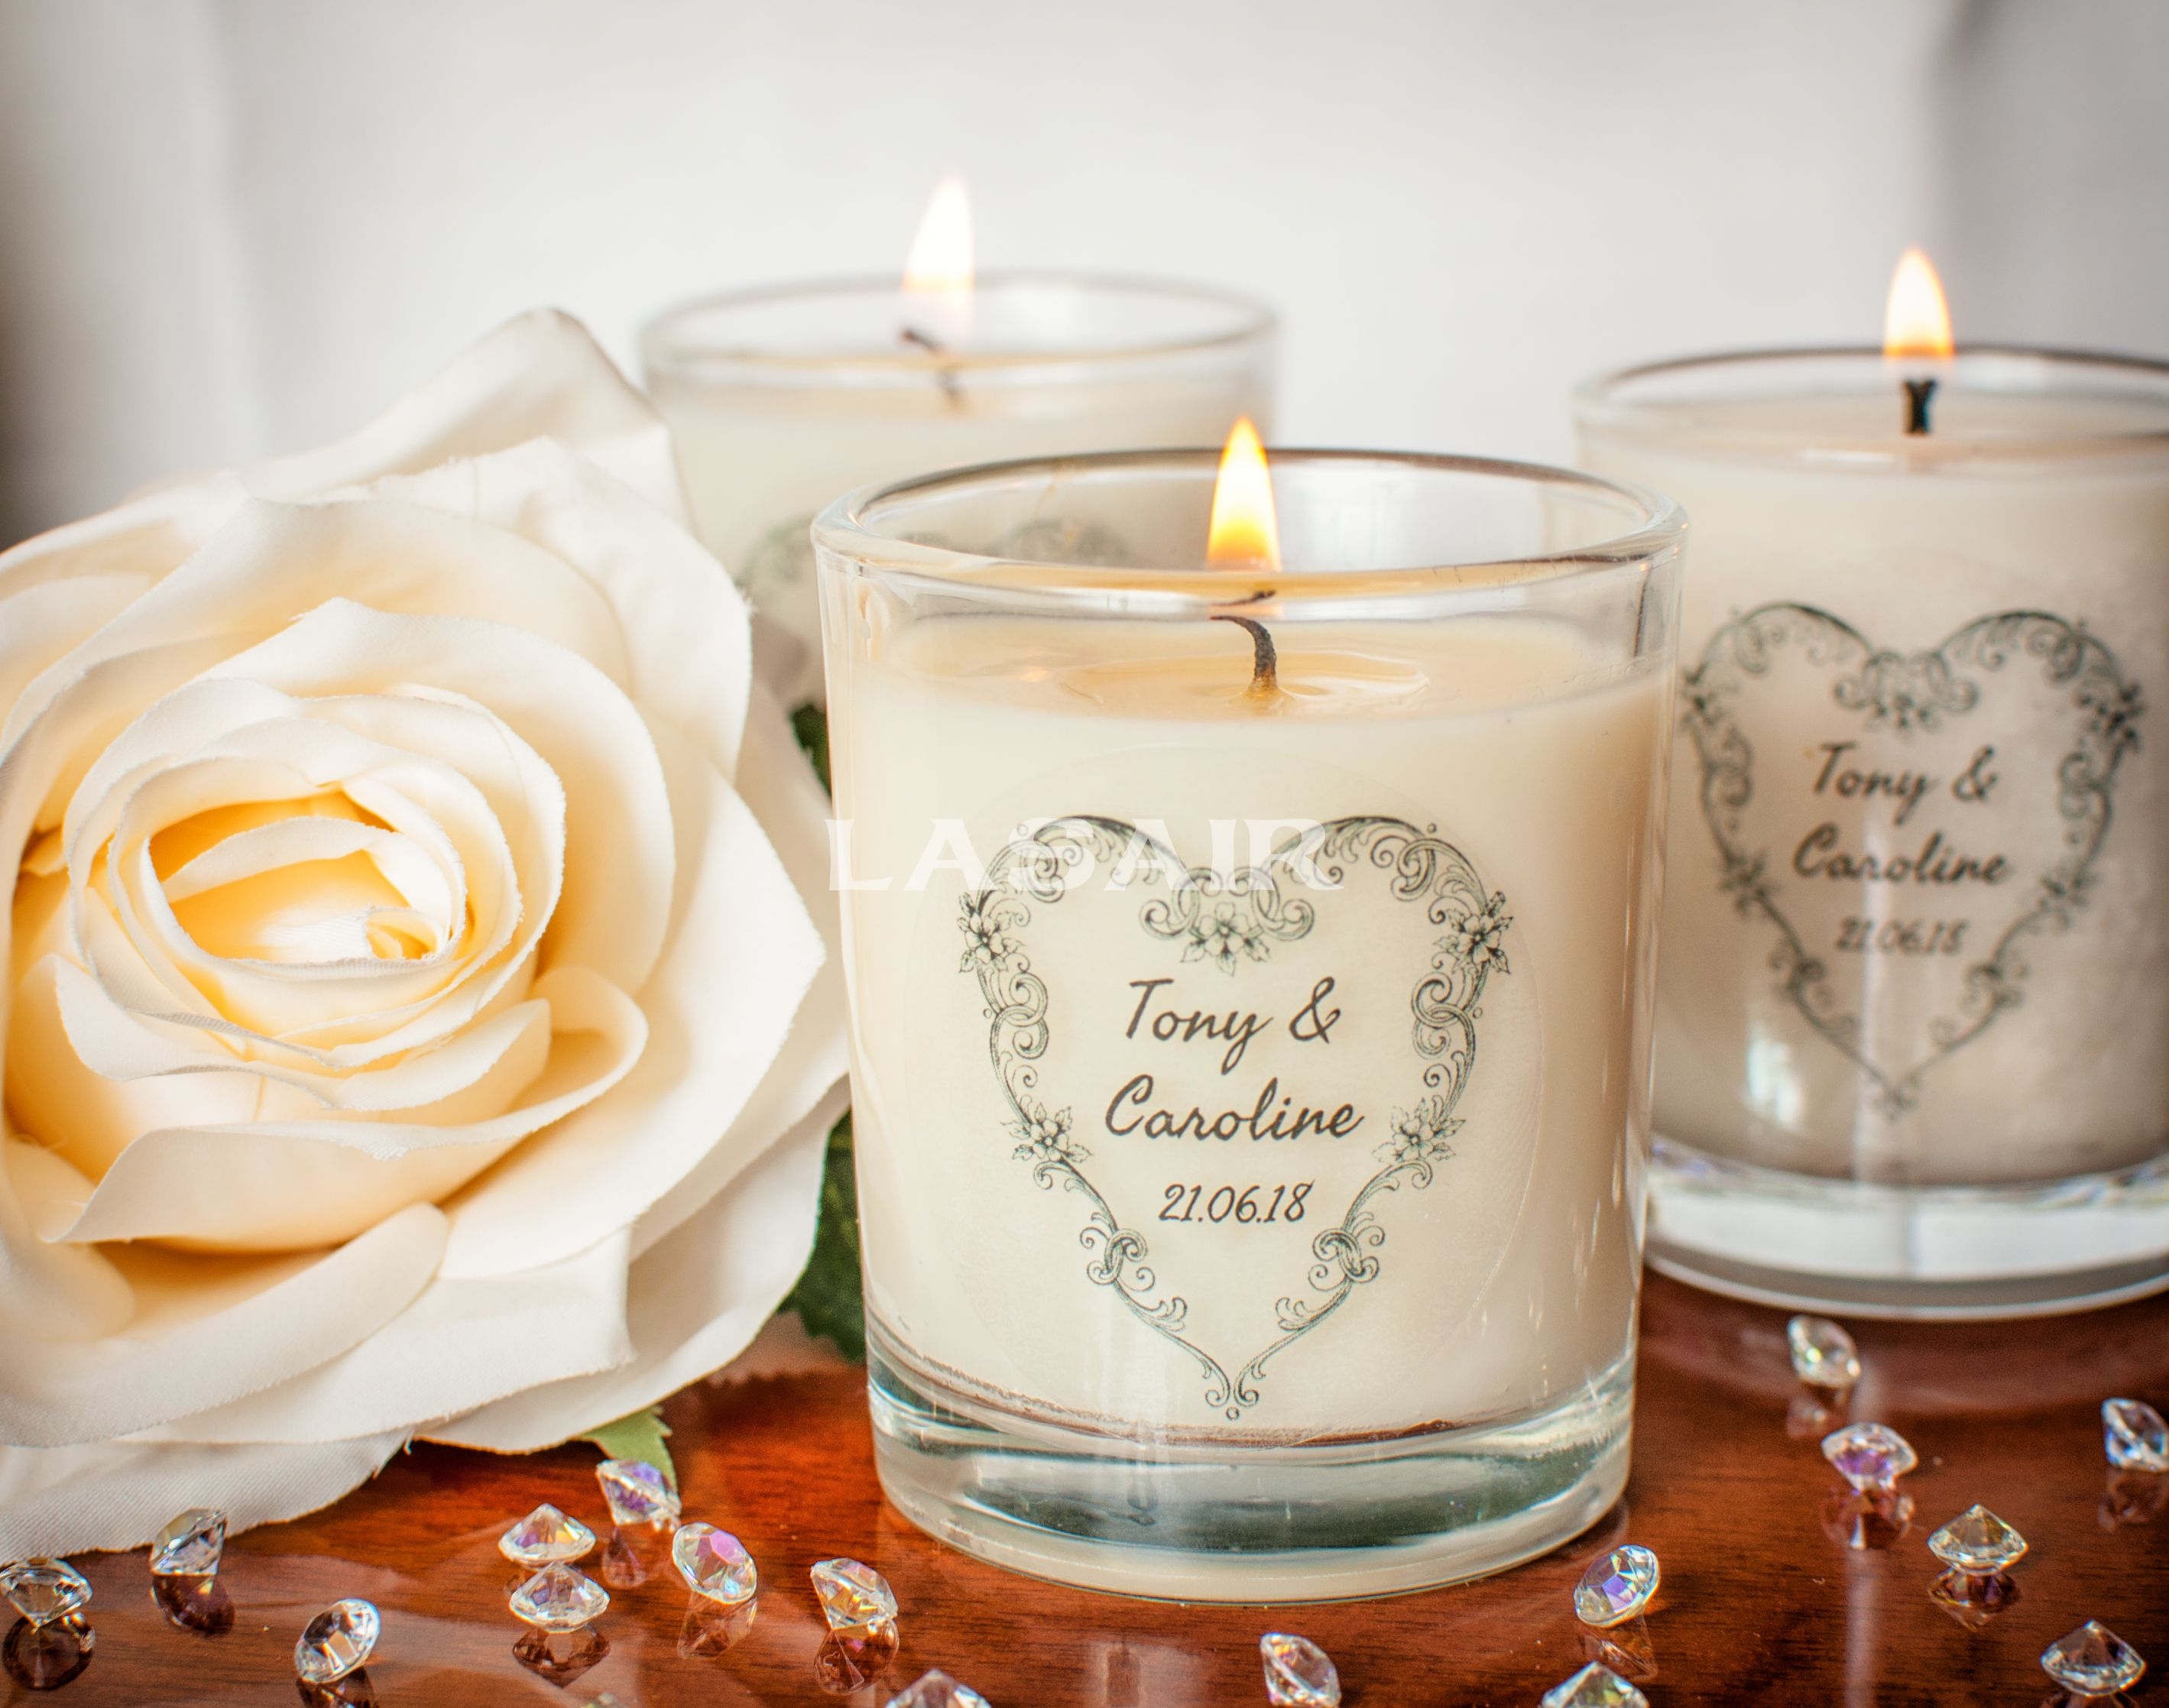 Add a touch of class to your special day with our handmade ...